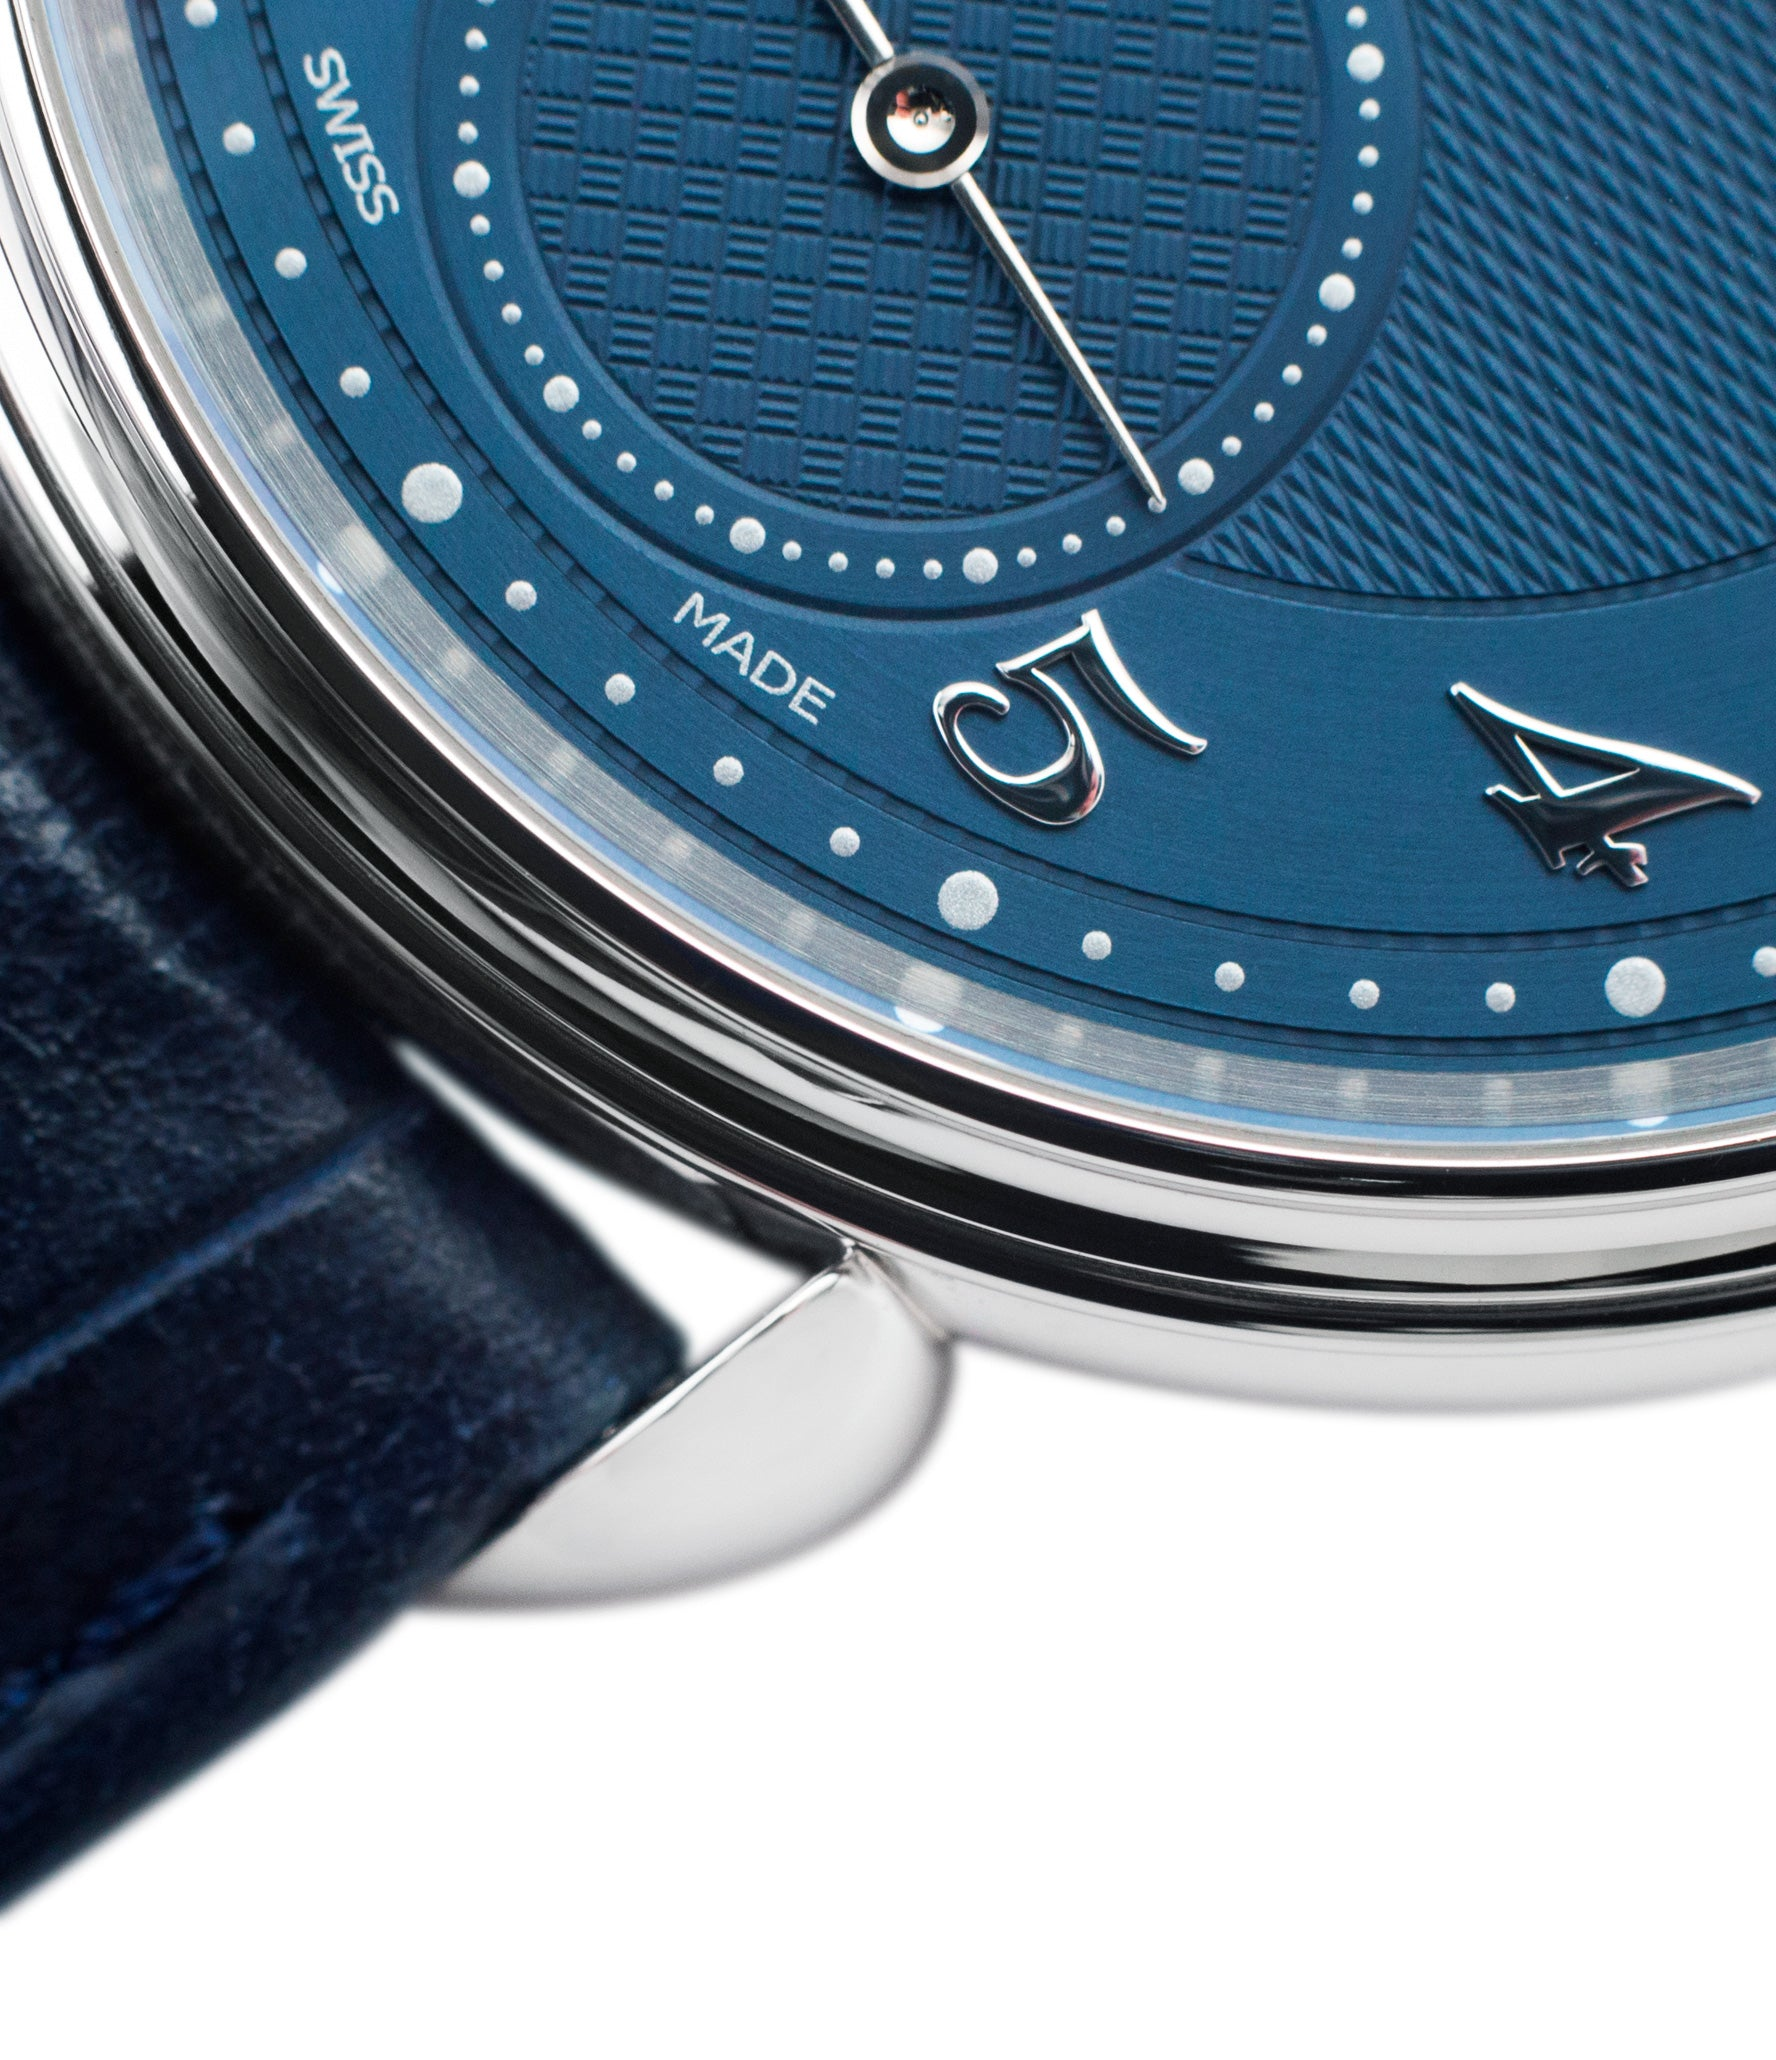 platinum watch Urban Jurgensen 1140 PT Blue dial watch online at A Collected Man London independent watchmaker specialist authorised retailer in the UK